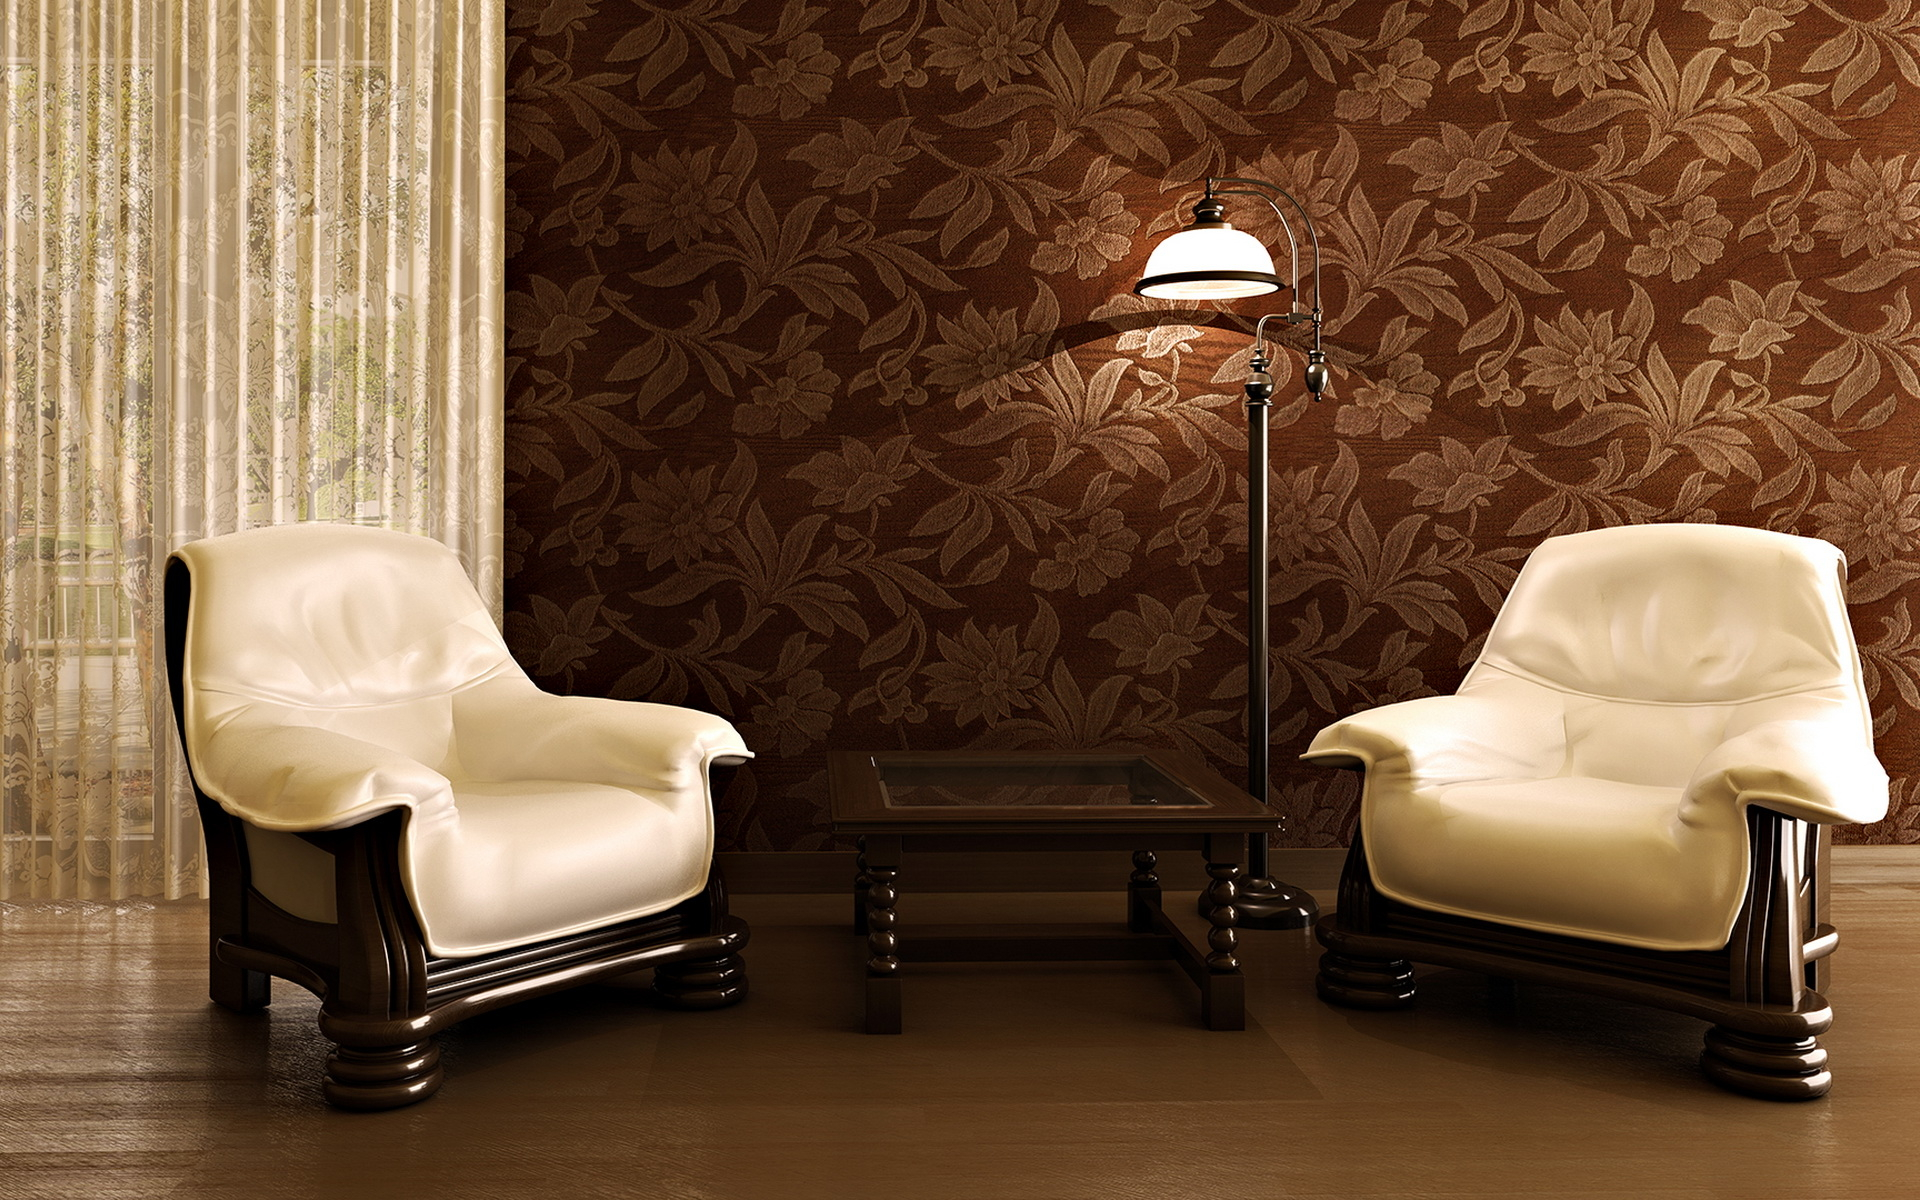 Wallpaper Room Design Ideas photo - 5